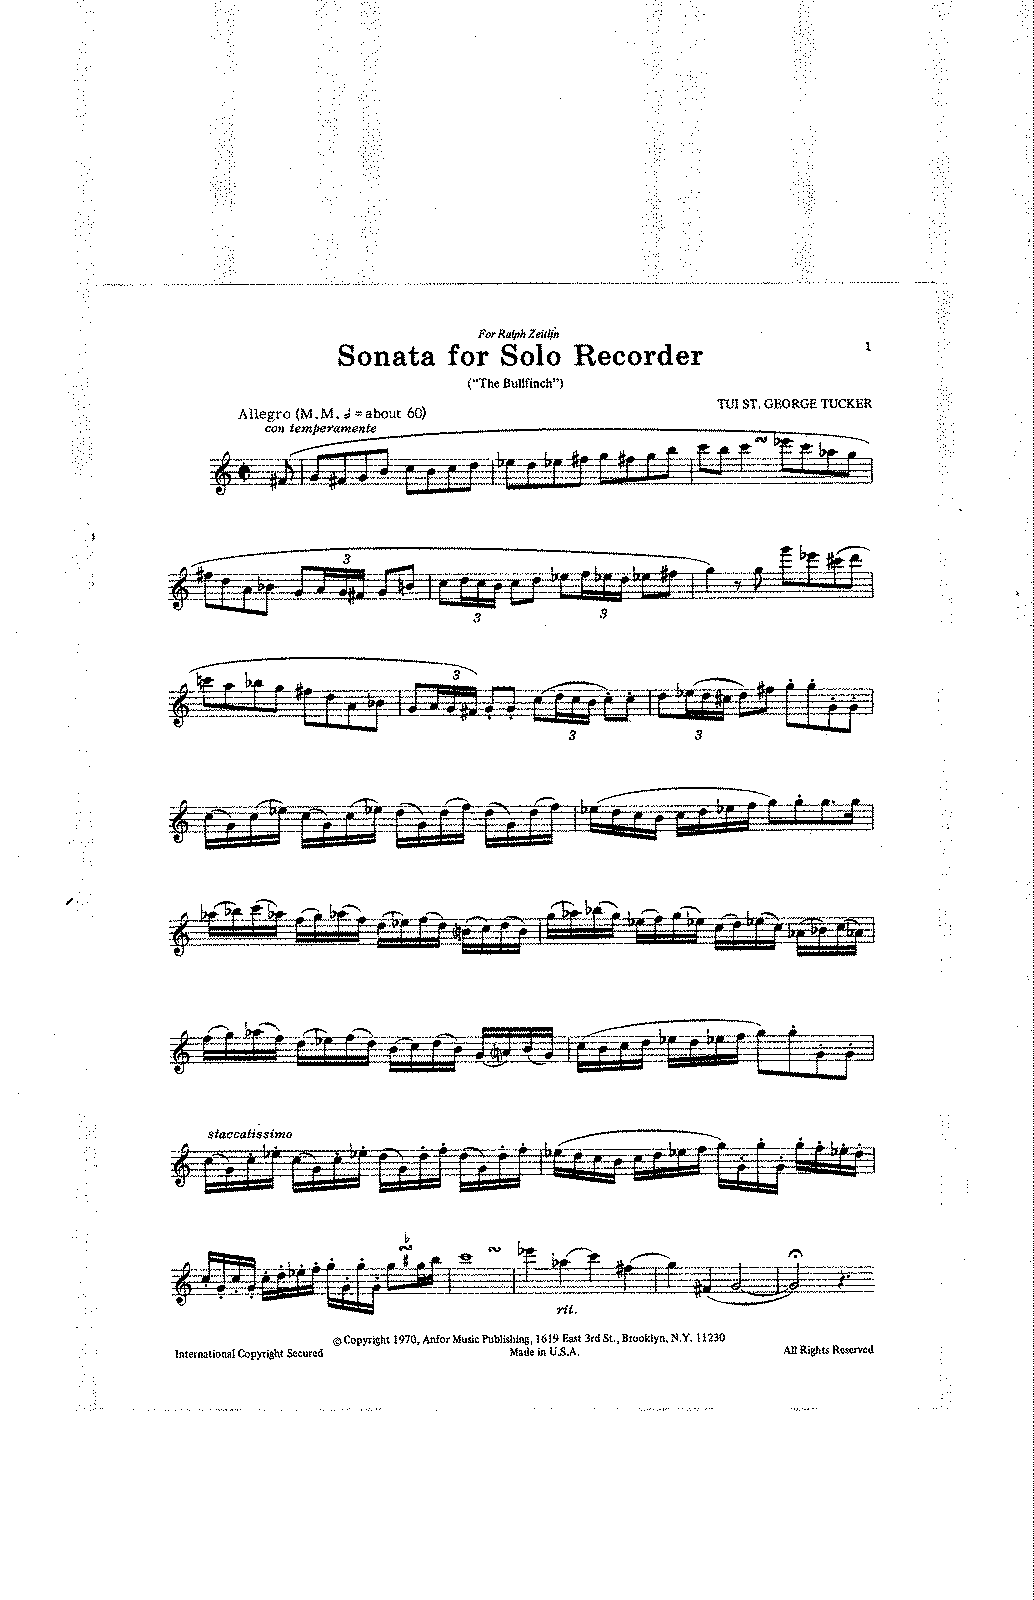 Sonata for Solo Recorder.pdf